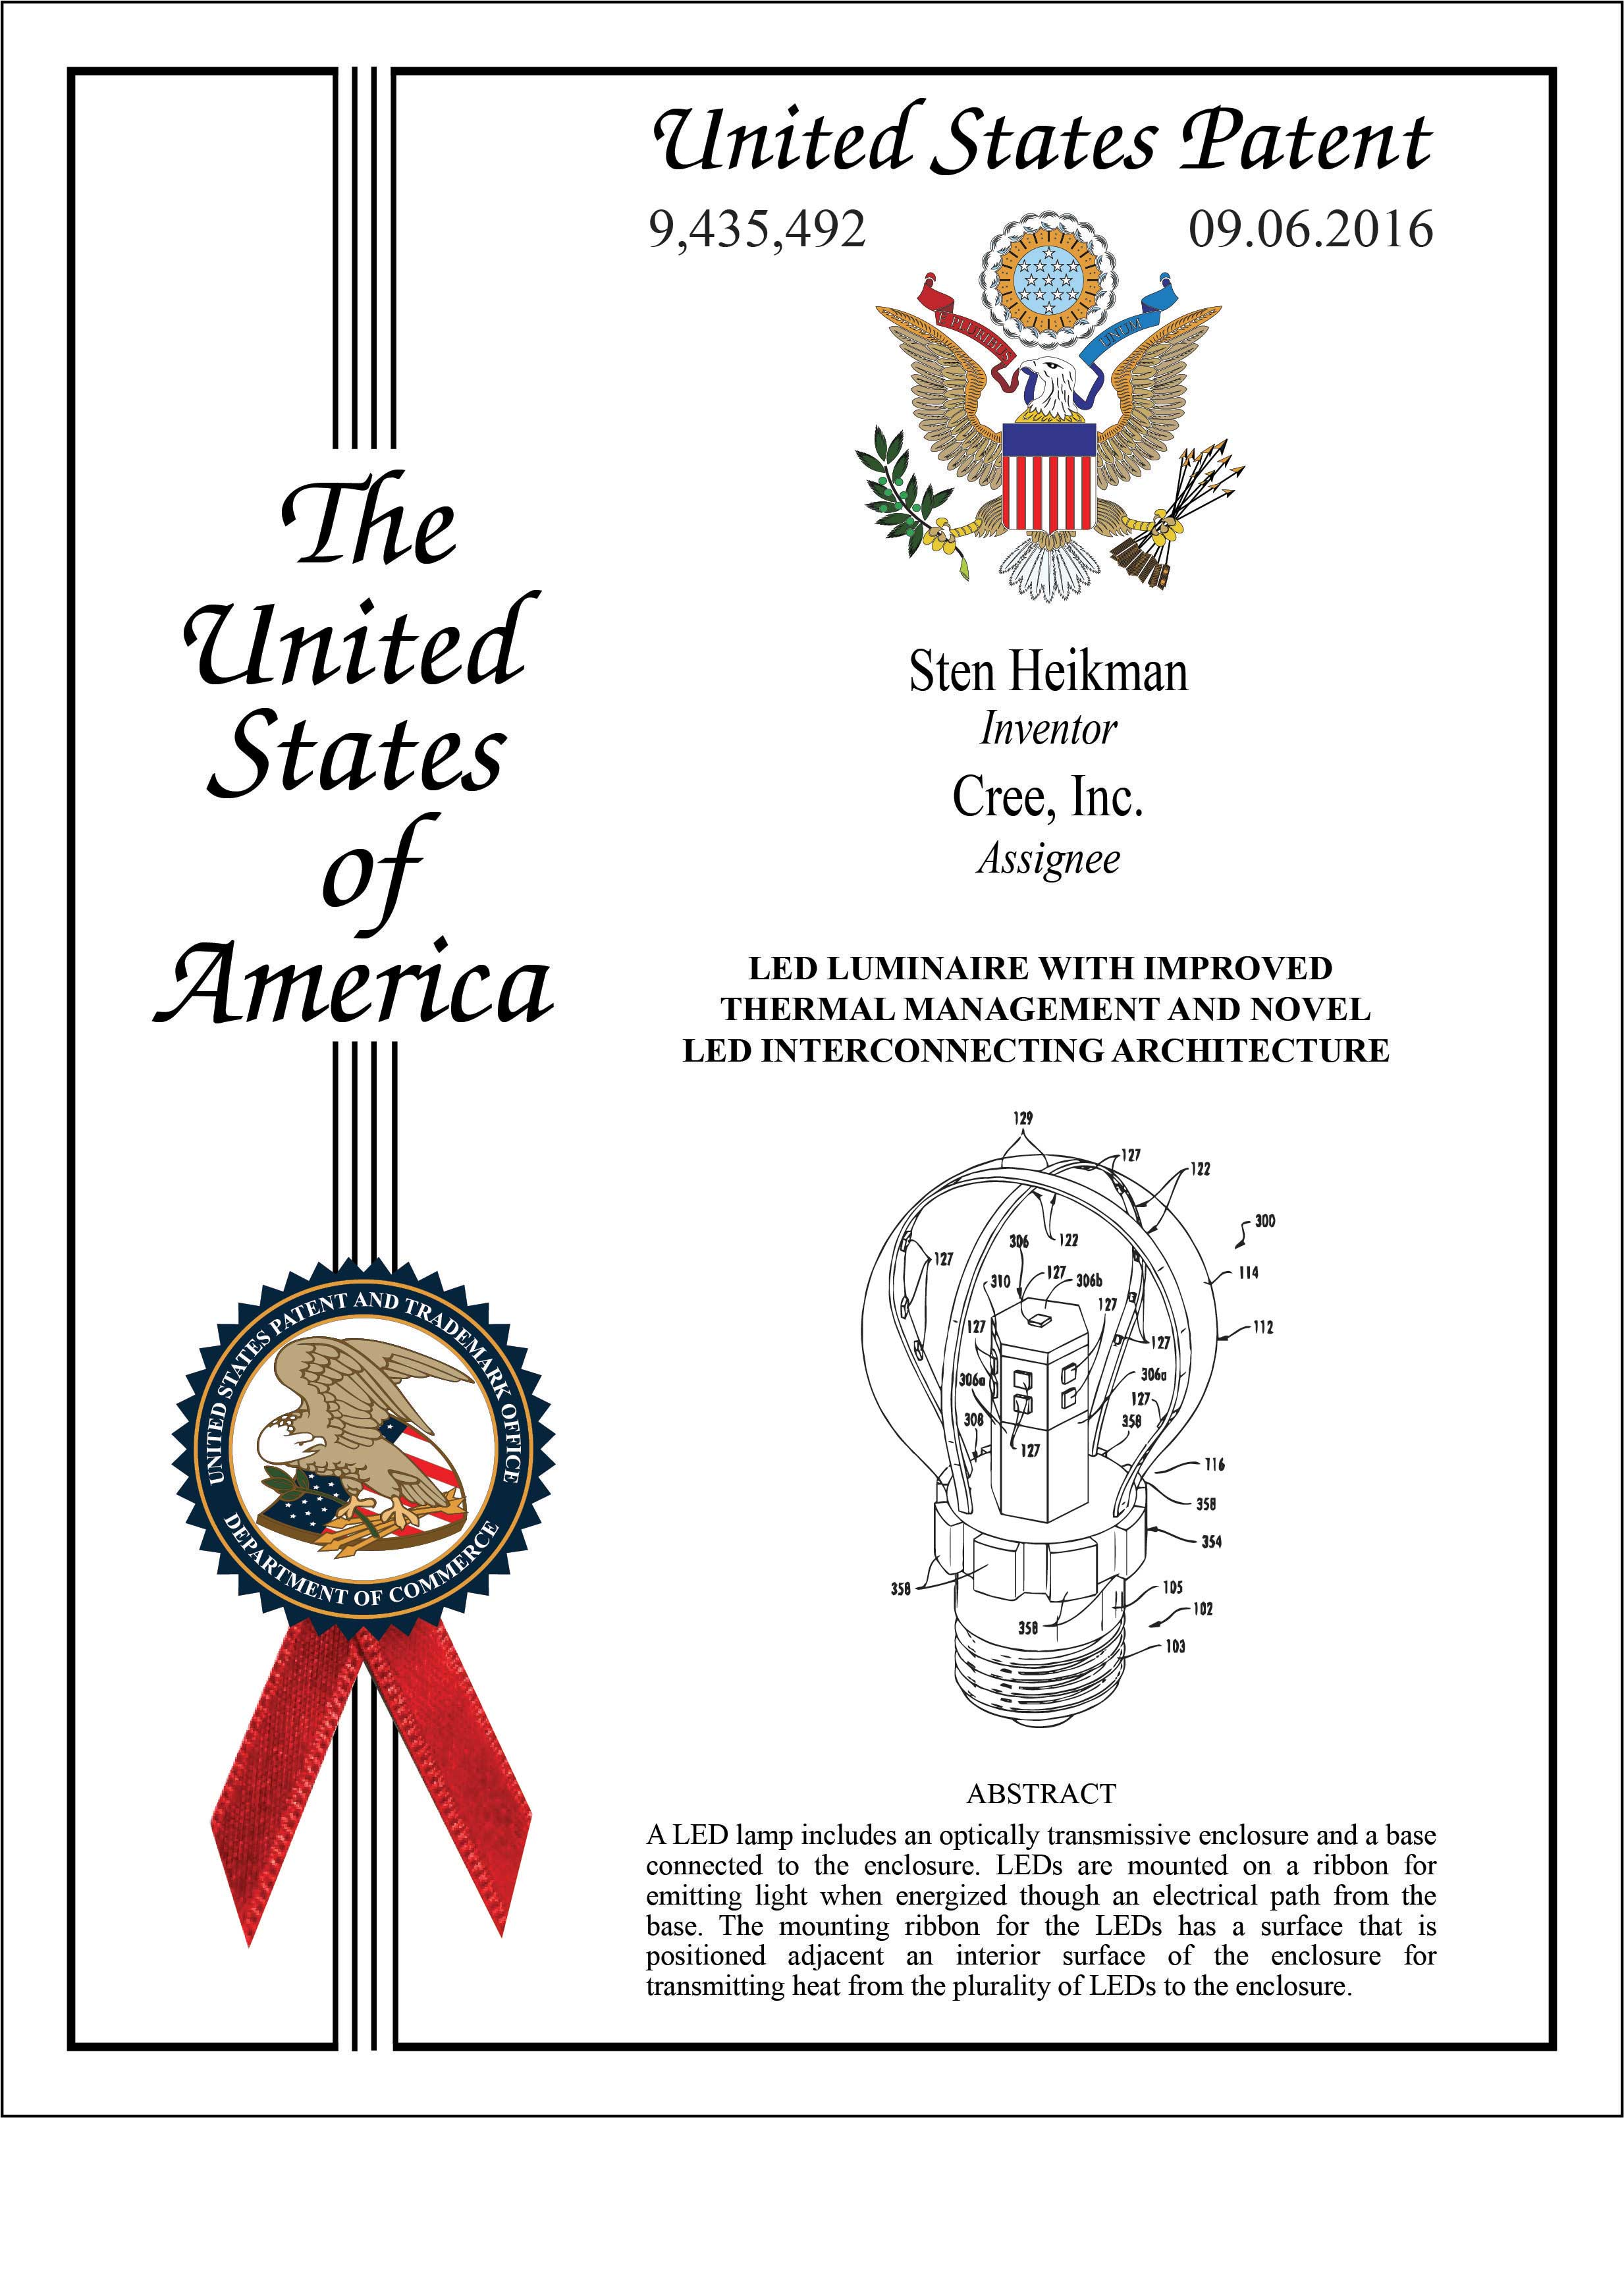 Patent Eagle Artwork Proof